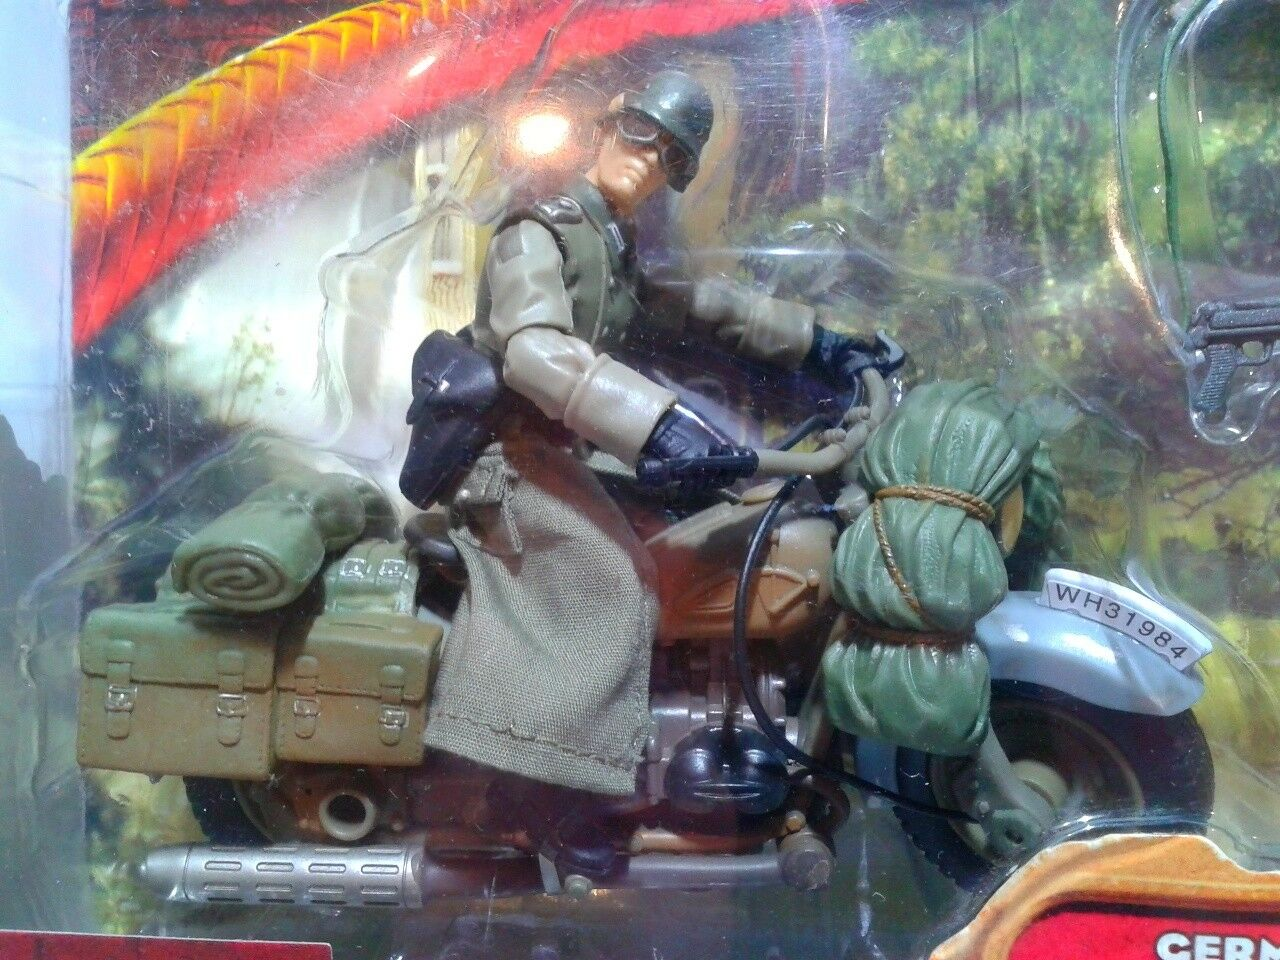 Indiana Jones Last Crusade German Soldier With With With Motorcycle MIB OVP d92d51